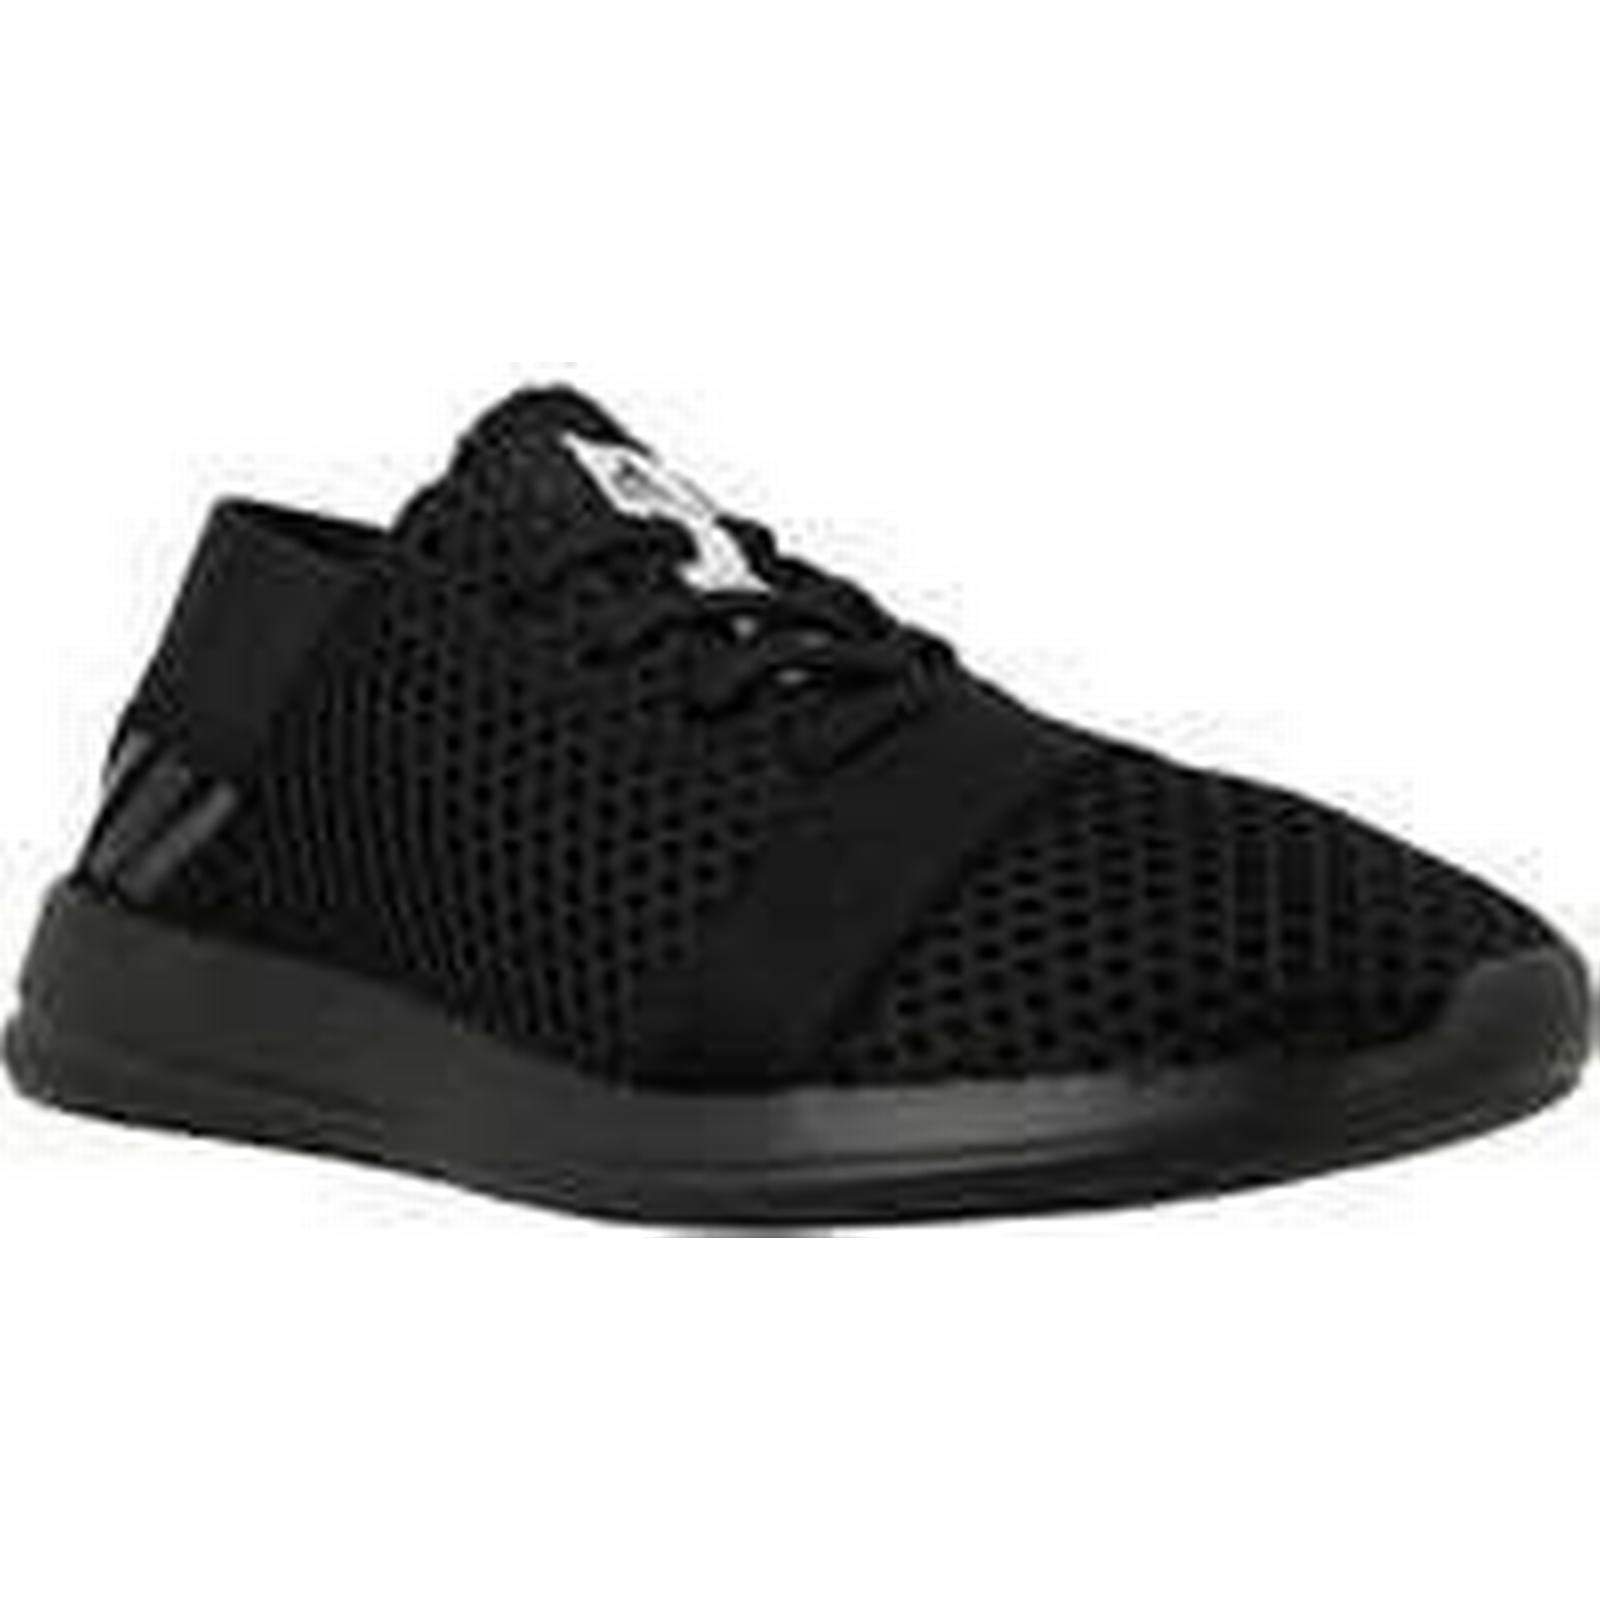 Spartoo.co.uk adidas Element (Trainers) Refine 3 M men's Shoes (Trainers) Element in Black db2186